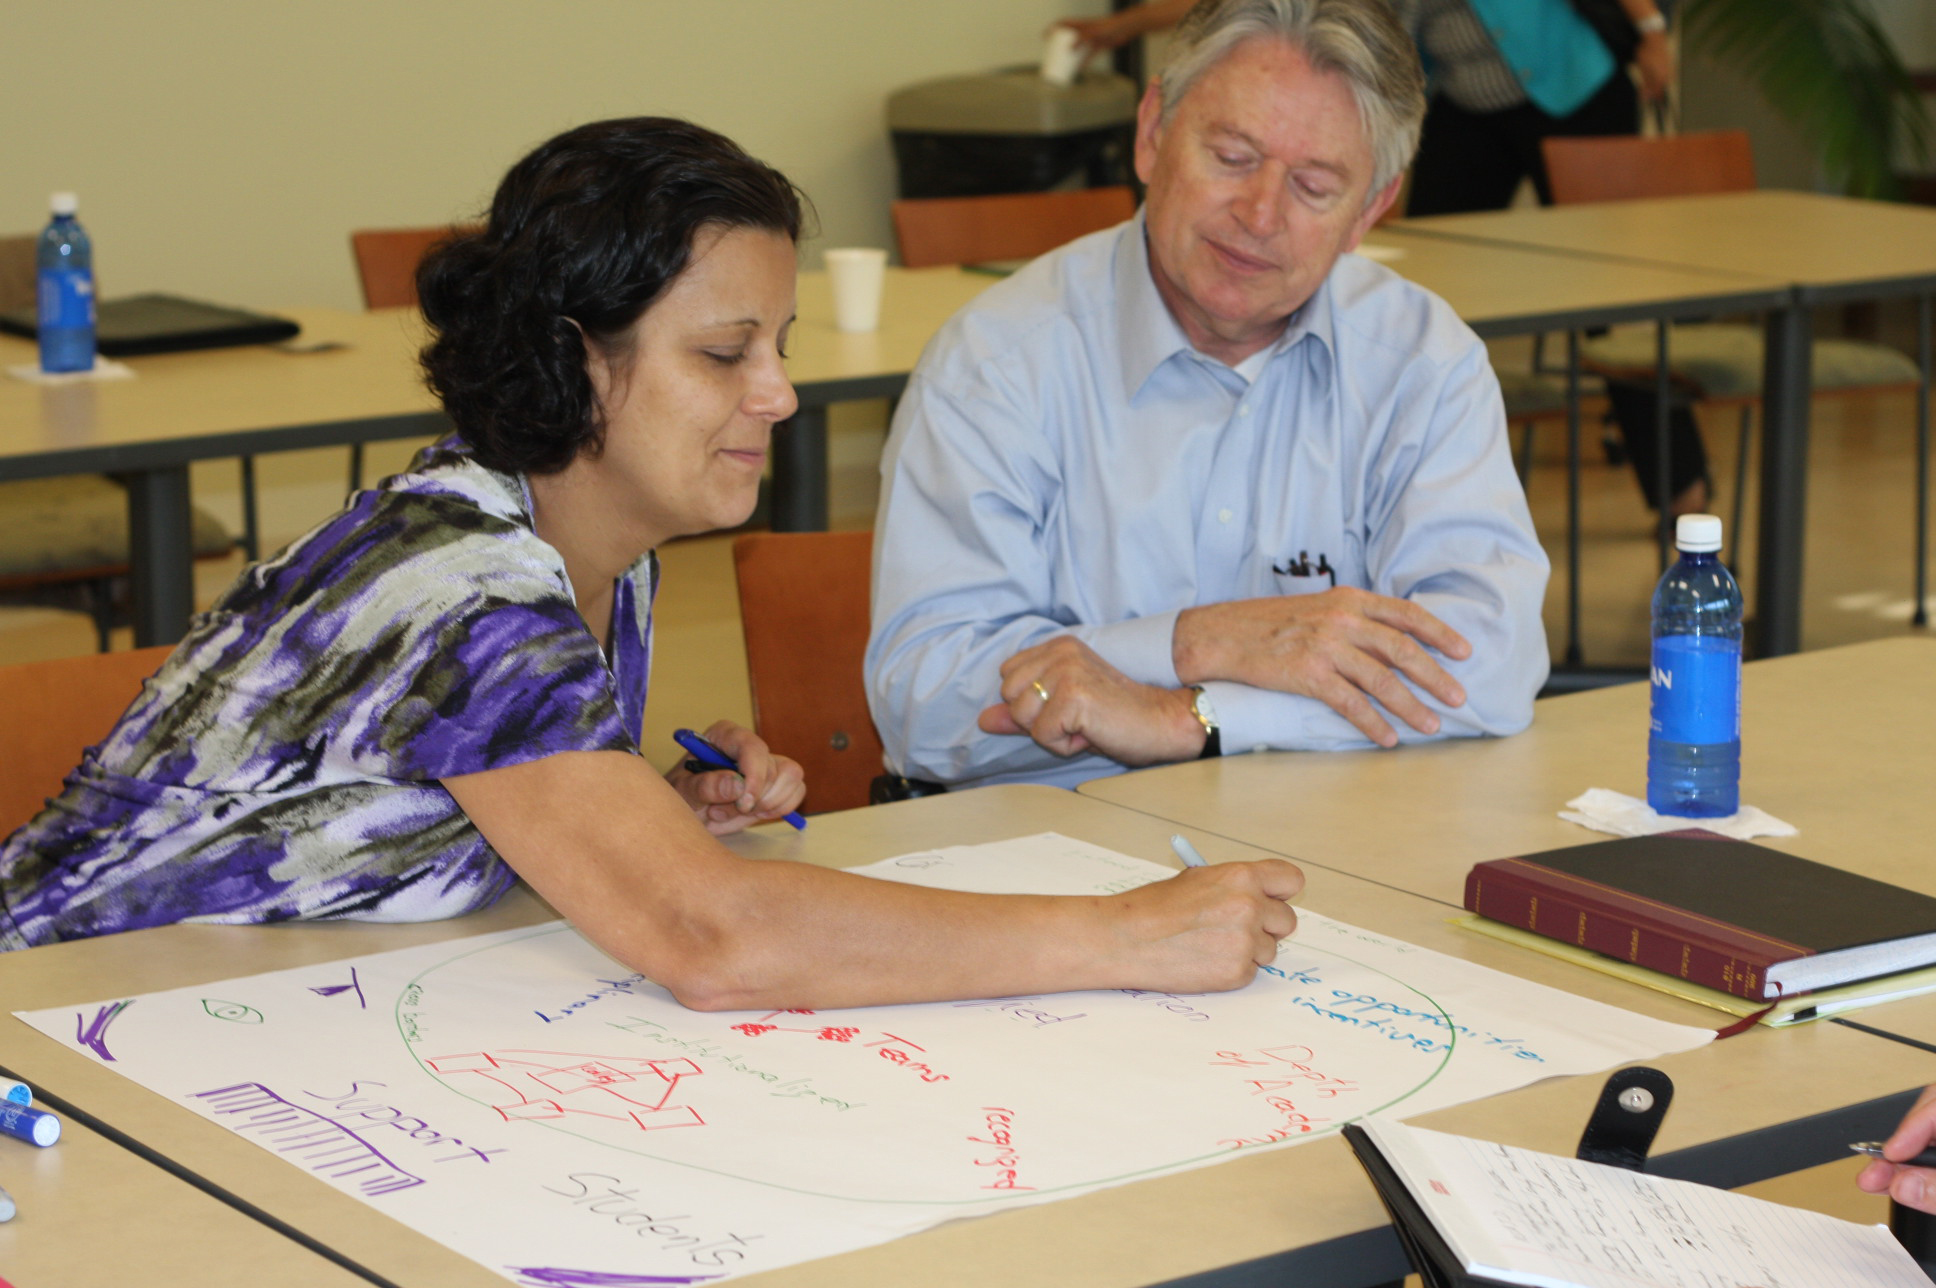 Maria Navarro, associate professor in the Department of Agricultural Leadership, Education and Communication, works with Josef Broder, associate dean for academic affairs for the UGA College of Agricultural and Environmental Sciences, at a Office of Global Programs visioning meeting in June 2014.